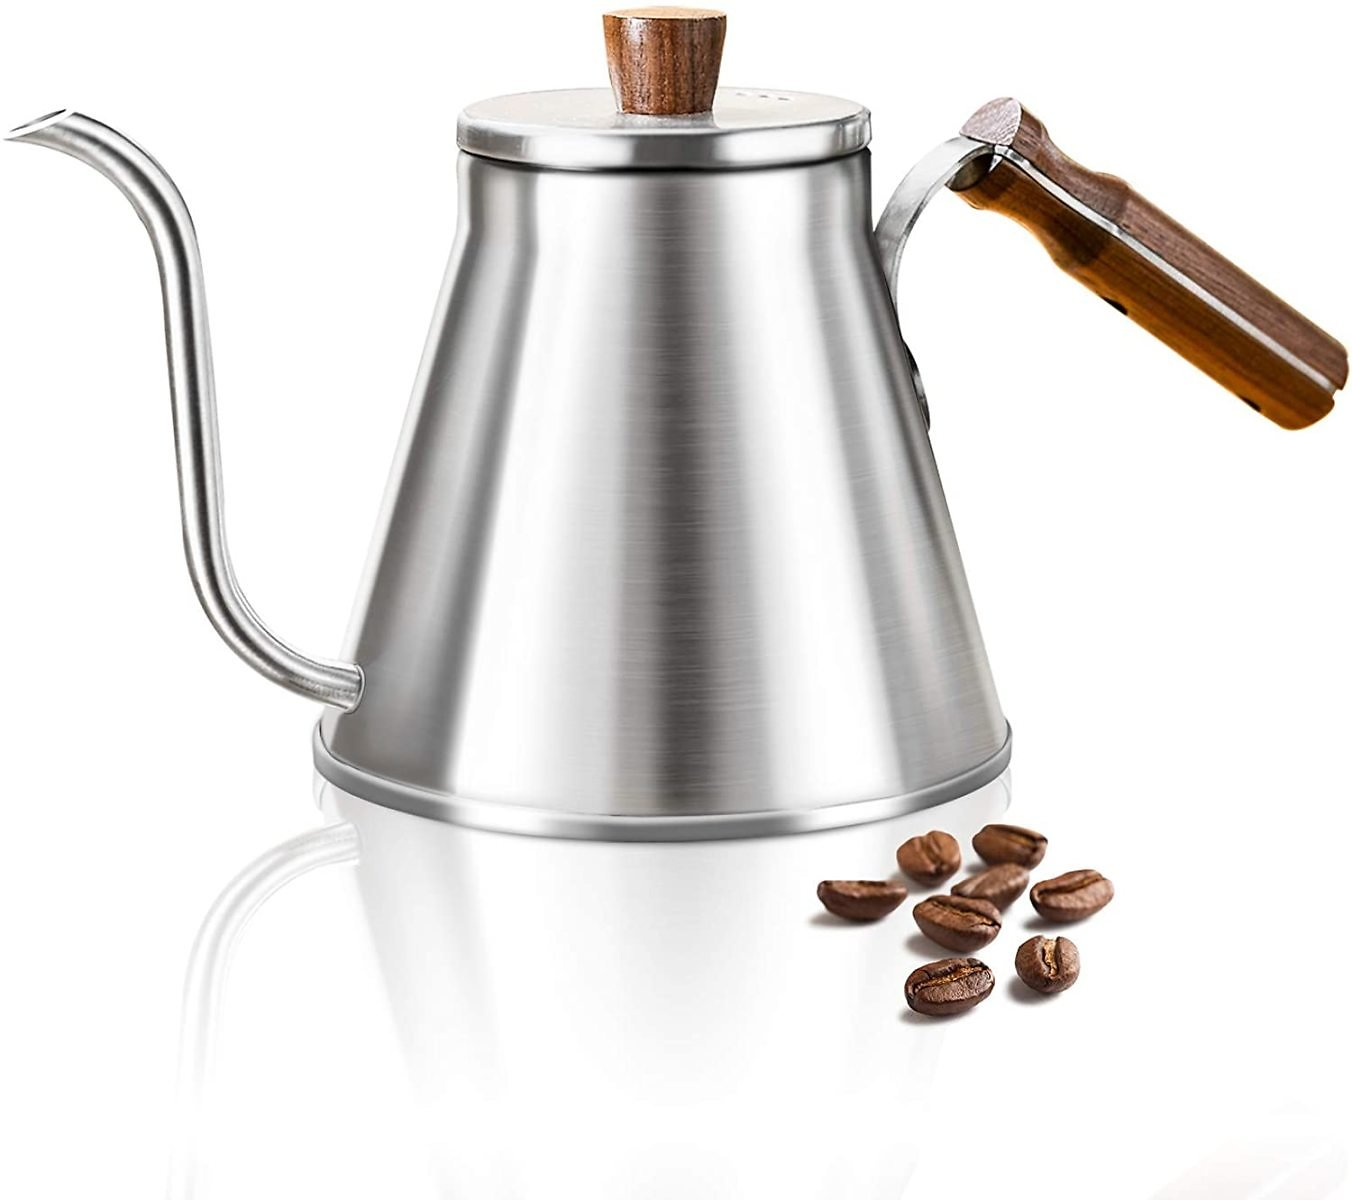 Stainless Steel Coffee Kettle 1.2L/40oz, Gooseneck Pour Over Coffee Kettle for Tea and Coffee, Silver